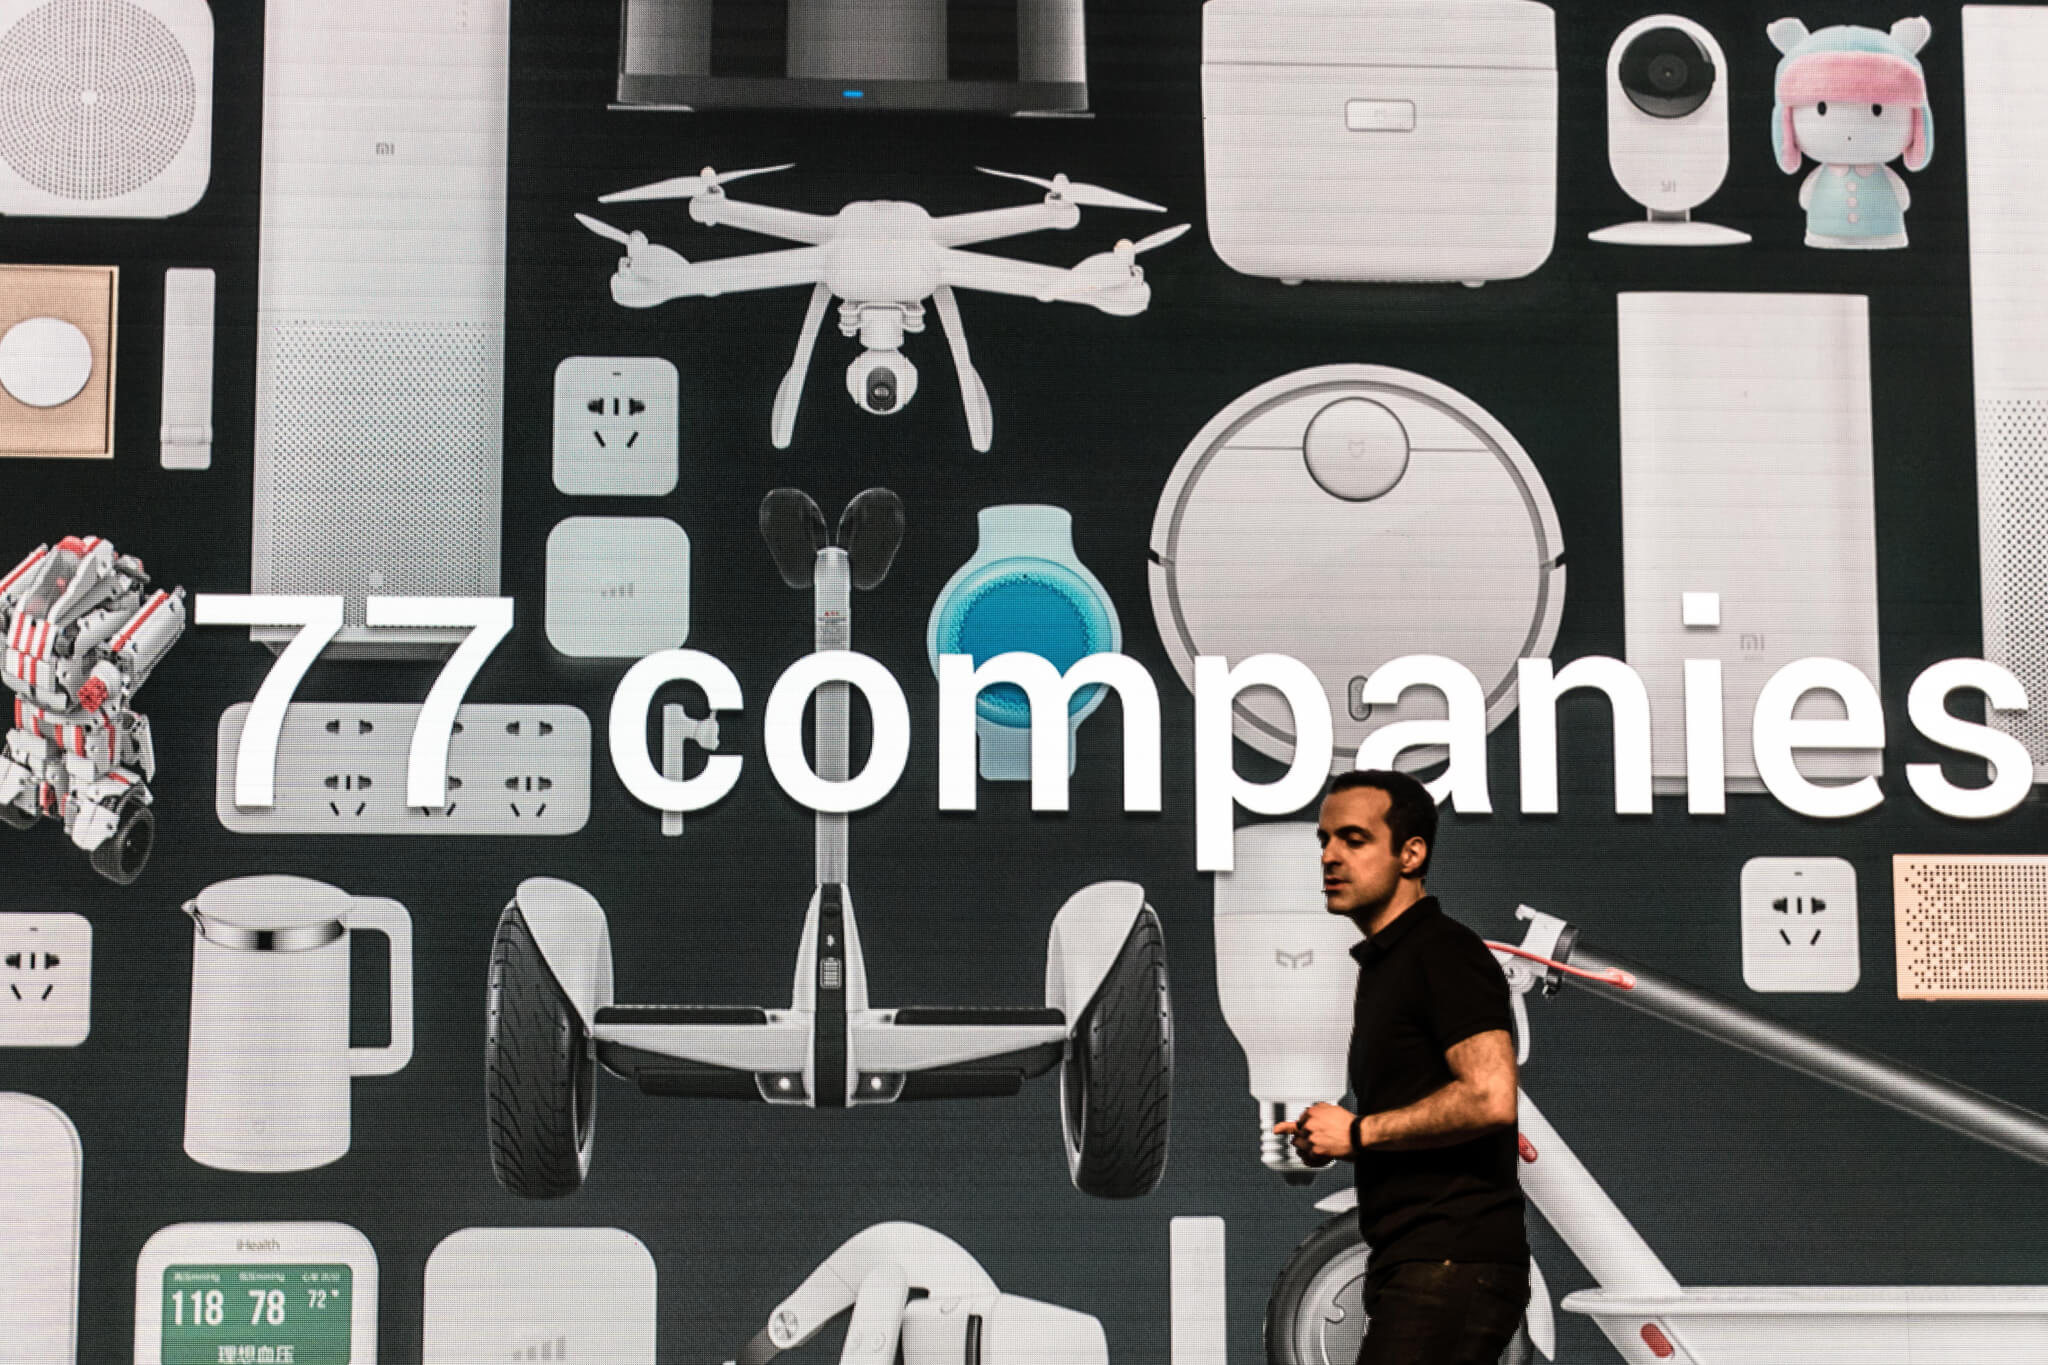 Xiaomi VP Hugo Barra at the Consumer Electronics Show in 2017 highlighting that the company now incubates 77 hardware companies in China.